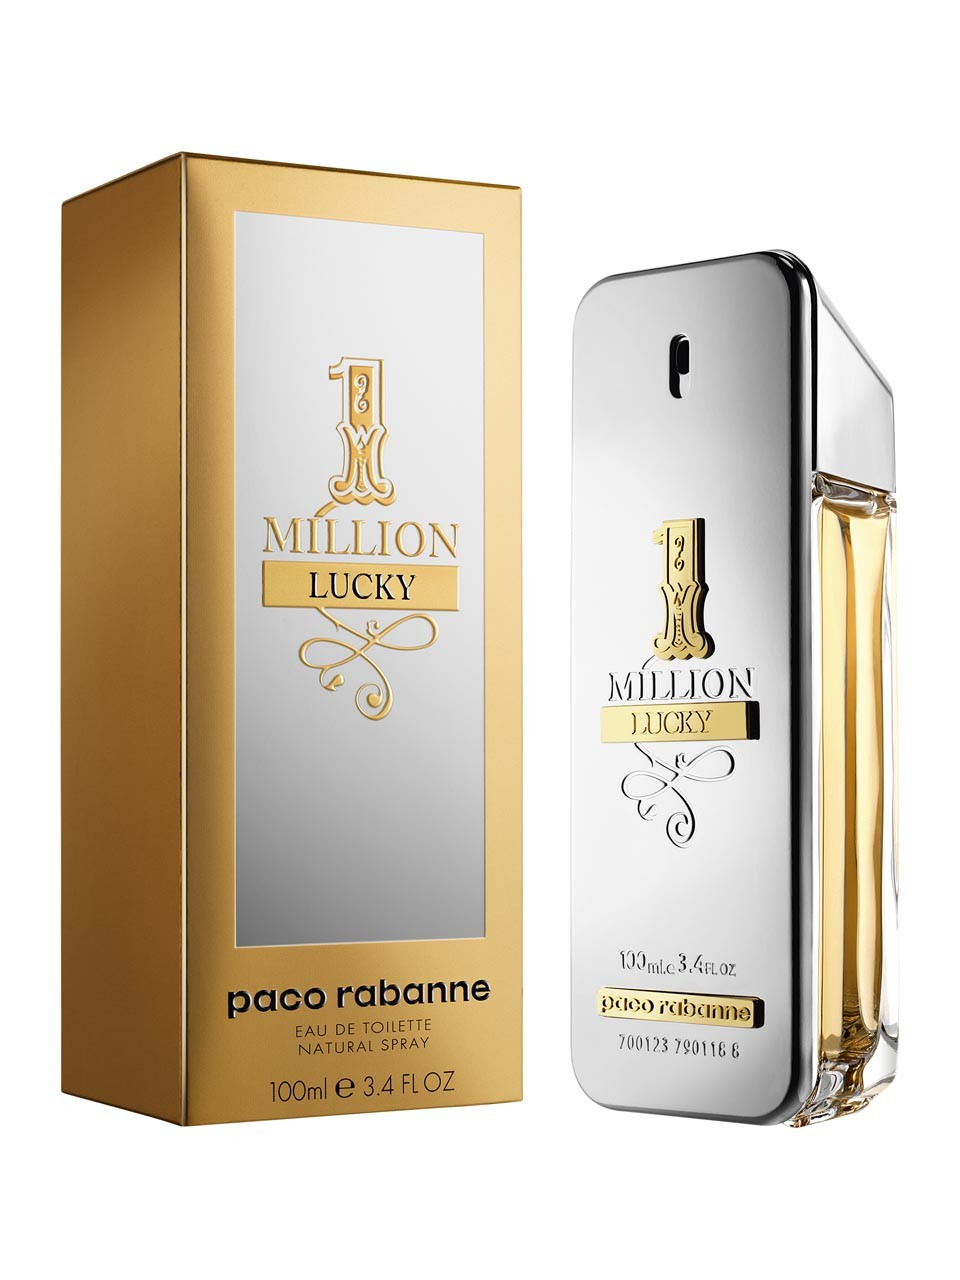 1 million lucky paco rabanne colonia una nuevo fragancia para hombres 2018. Black Bedroom Furniture Sets. Home Design Ideas